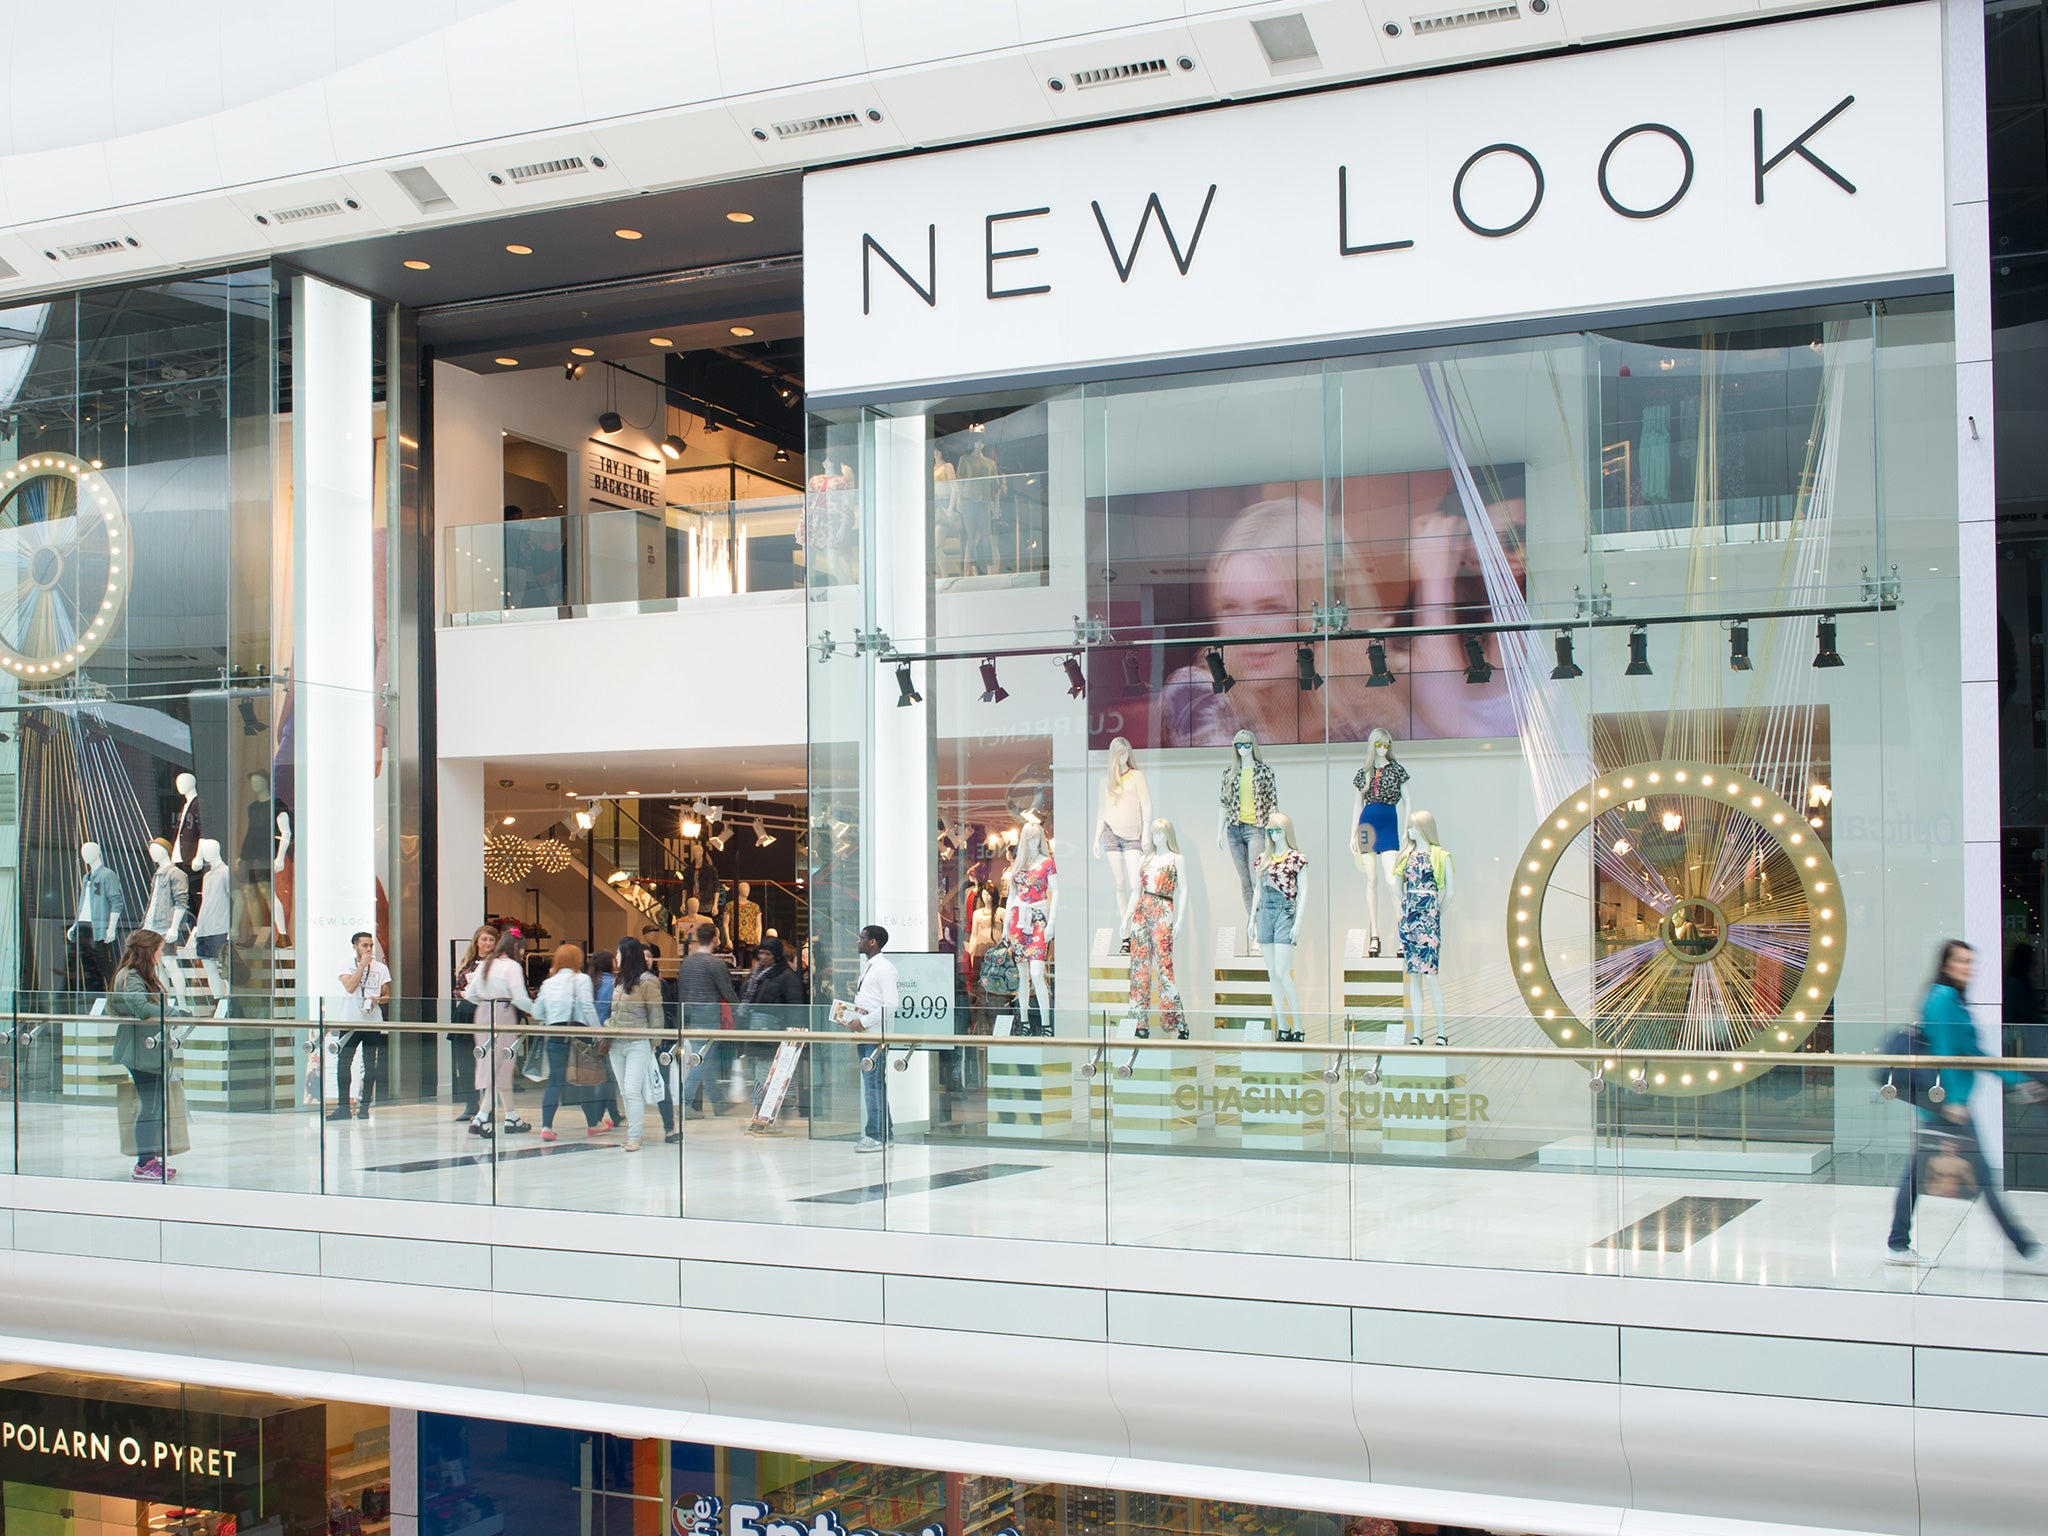 New Look Announces Stores Will Have Separate Entrances For